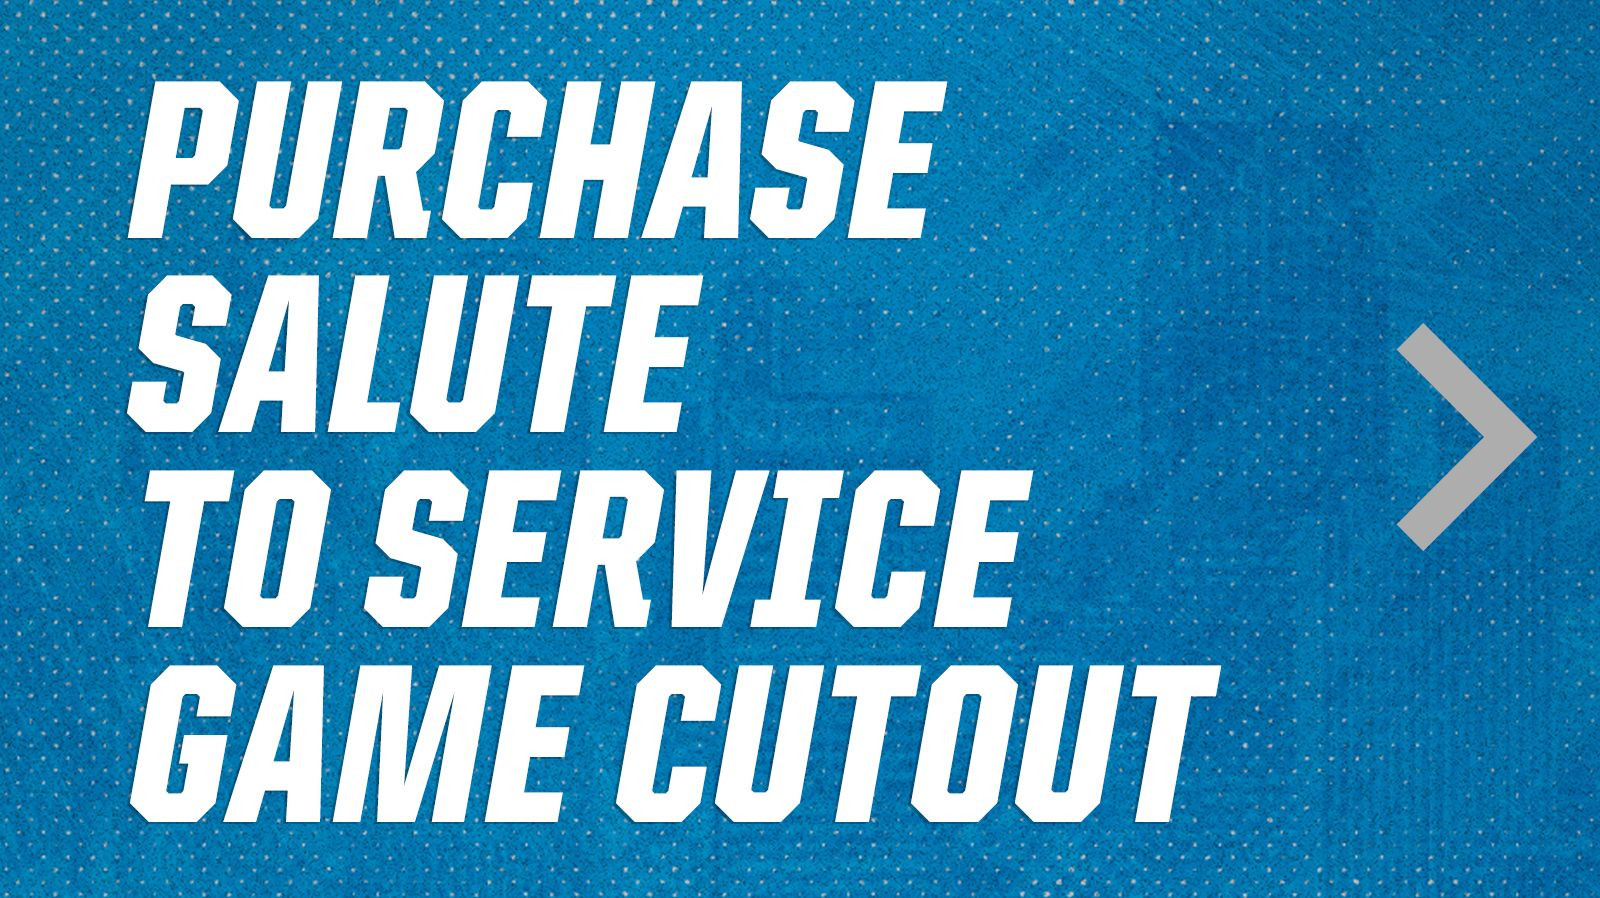 purchase-salute-service